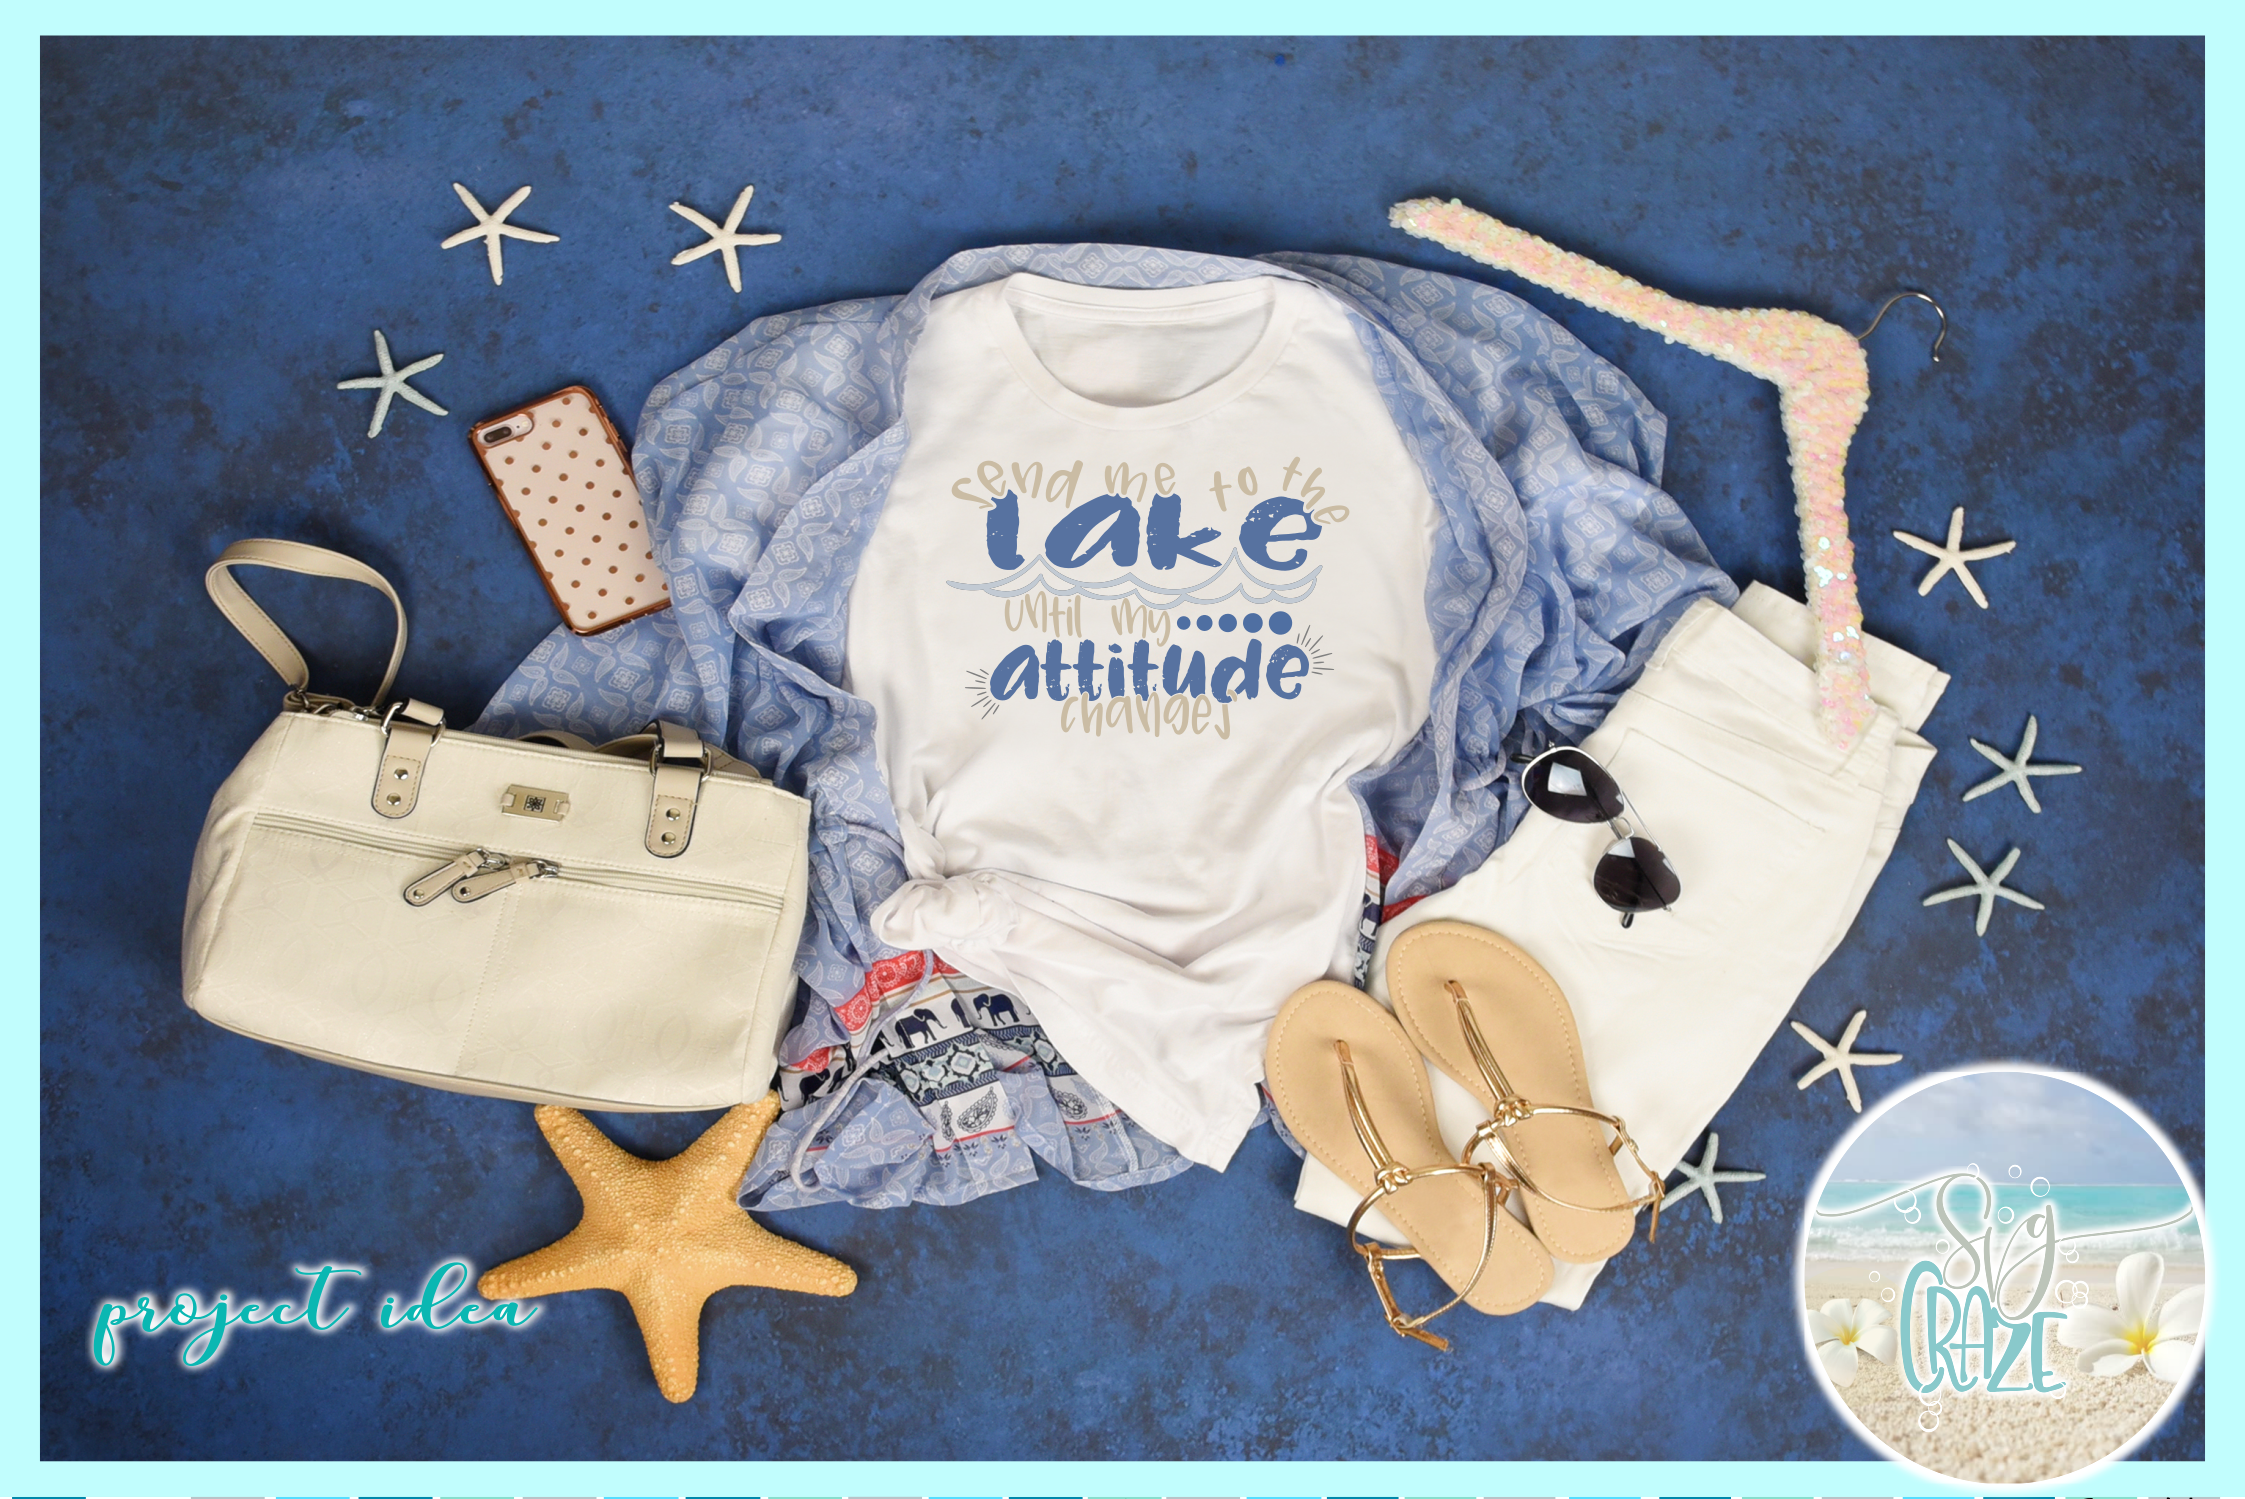 Send Me To The Lake Until My Attitude Changes Quote SVG example image 2